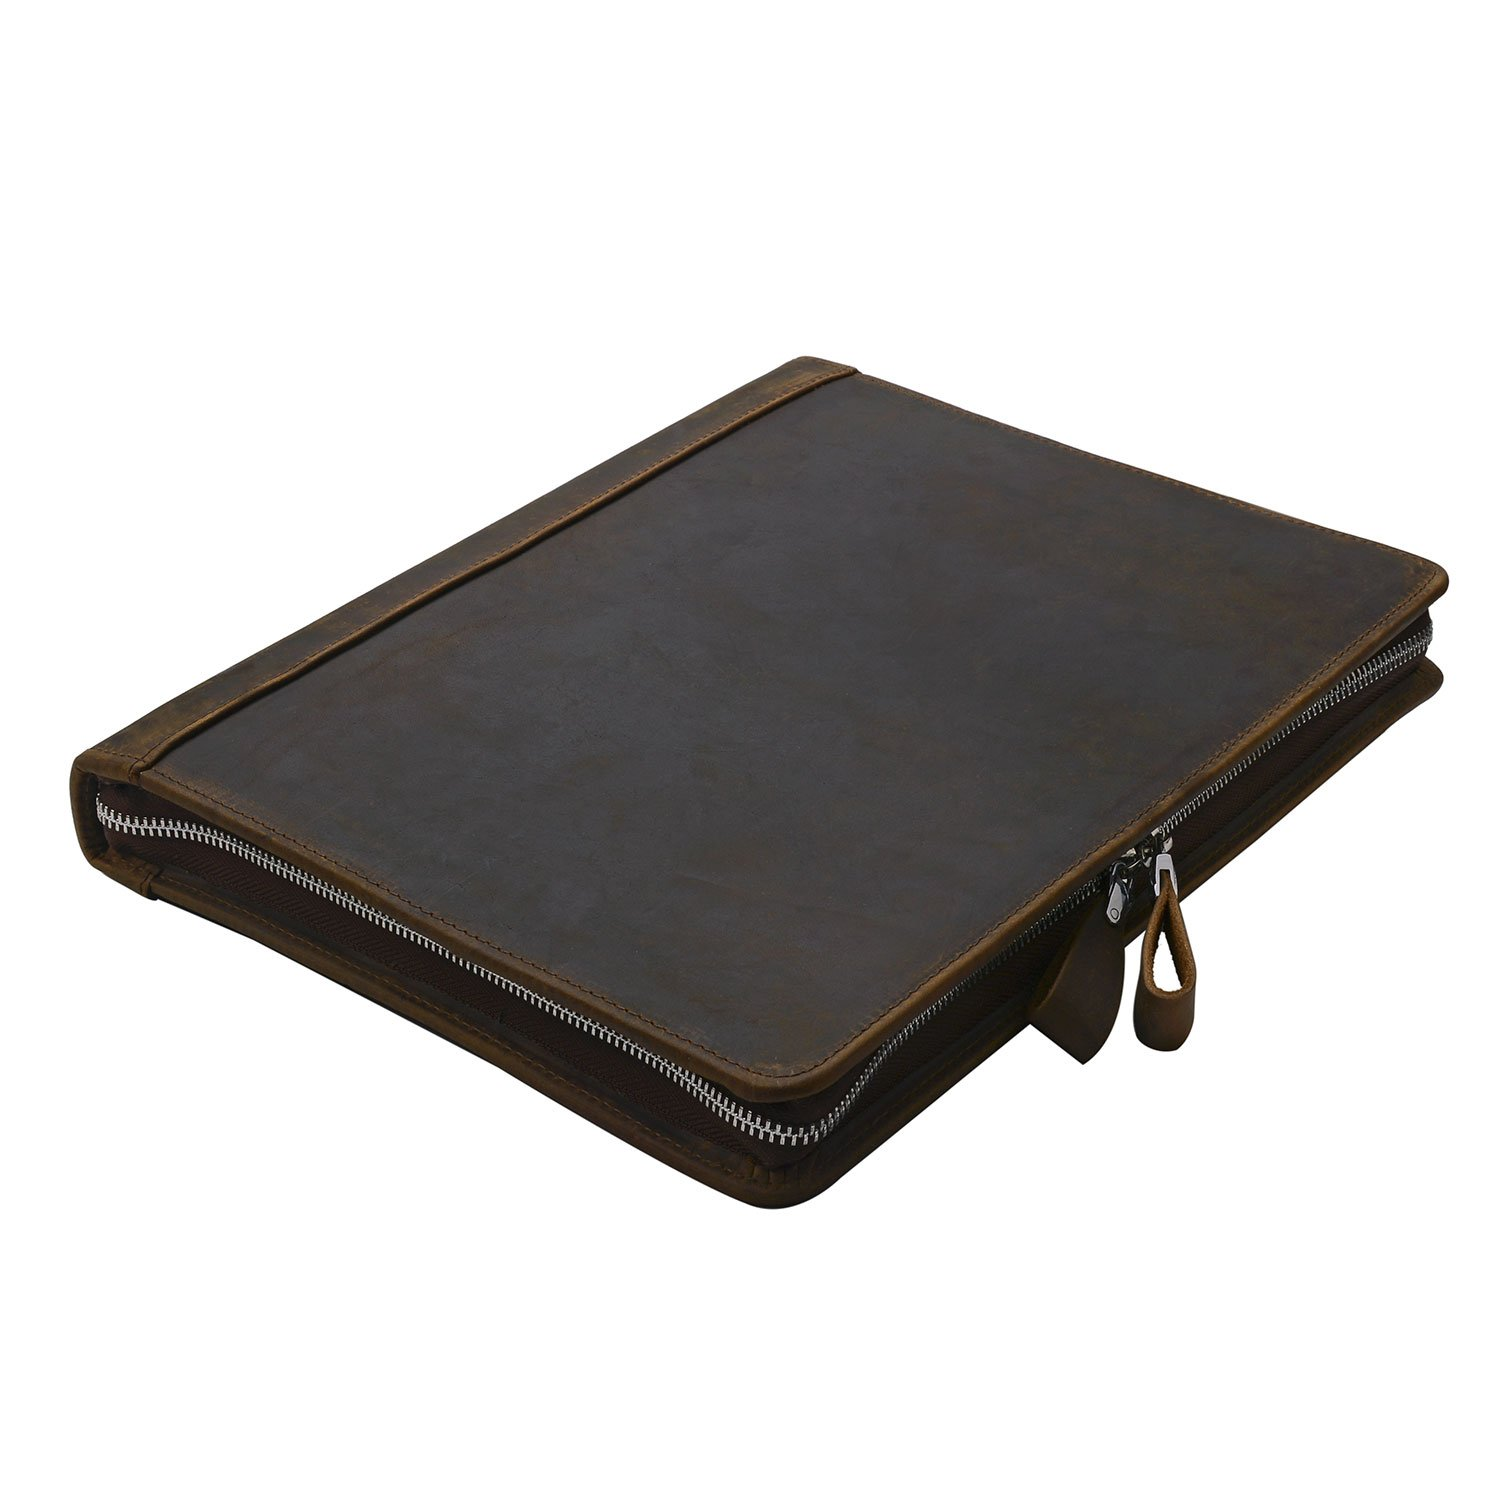 Rustic Leather Padfolio with 3-Ring Binder for Letter A4 Paper, 11-inch MacBook Air, Tan by iCarryAlls (Image #5)